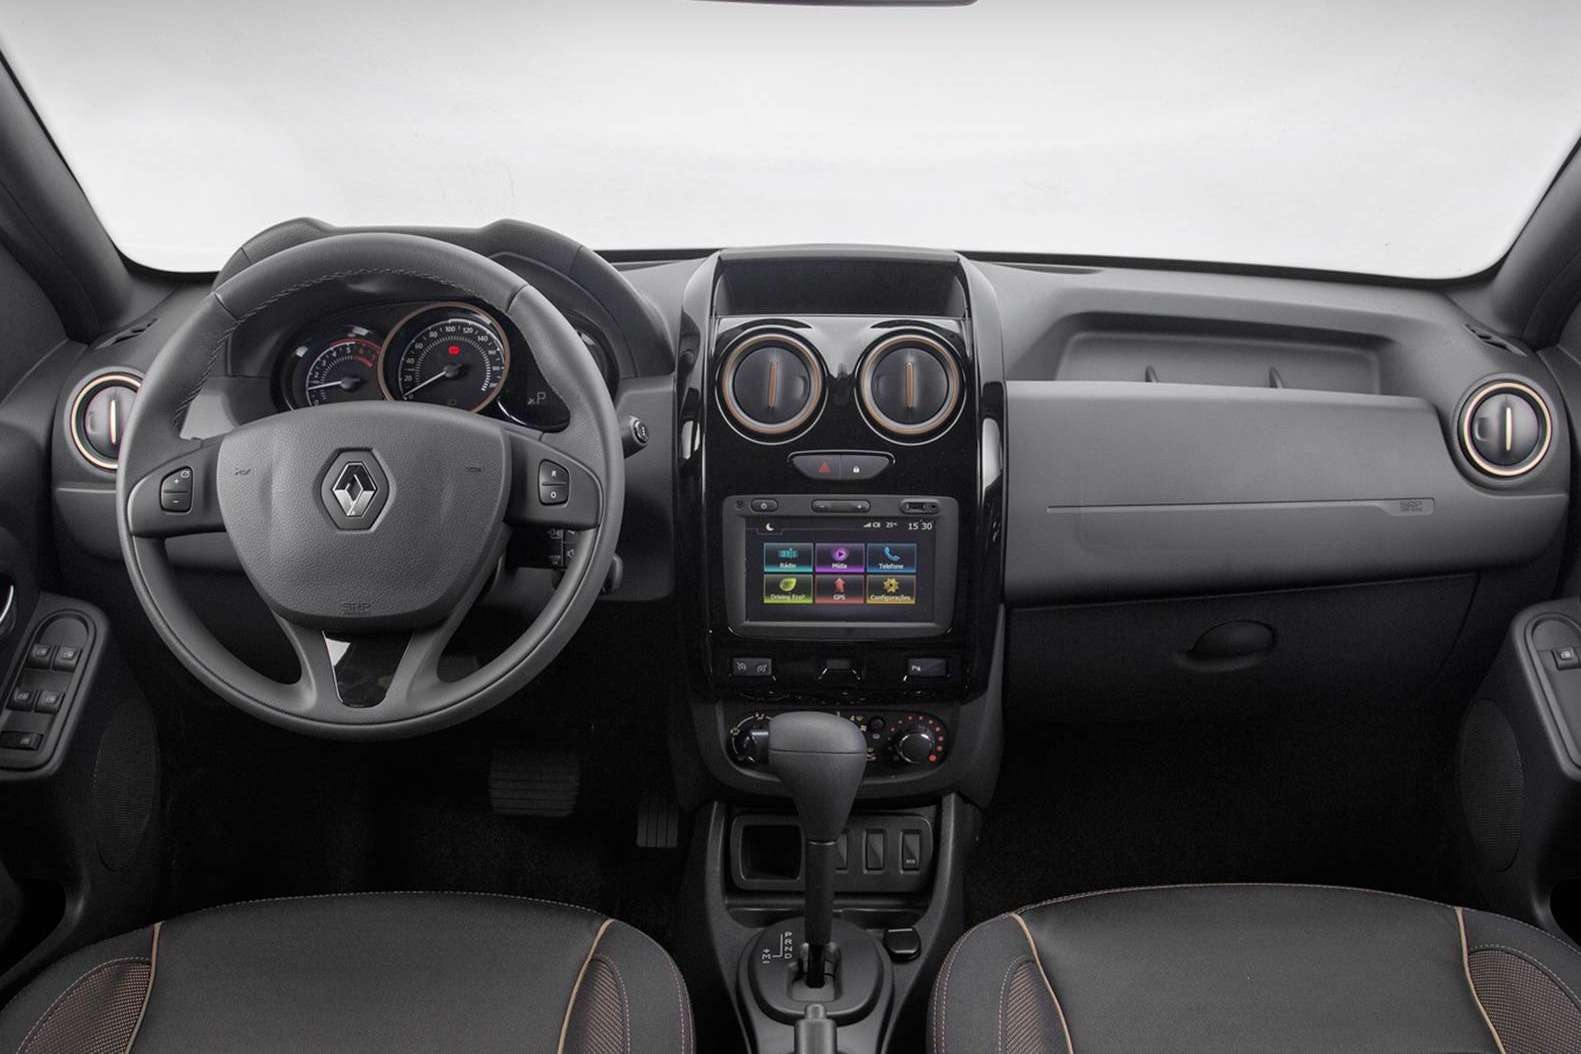 2016-renault-duster-launched-with-new-look-better-economy-in-brazil-photo-gallery_4